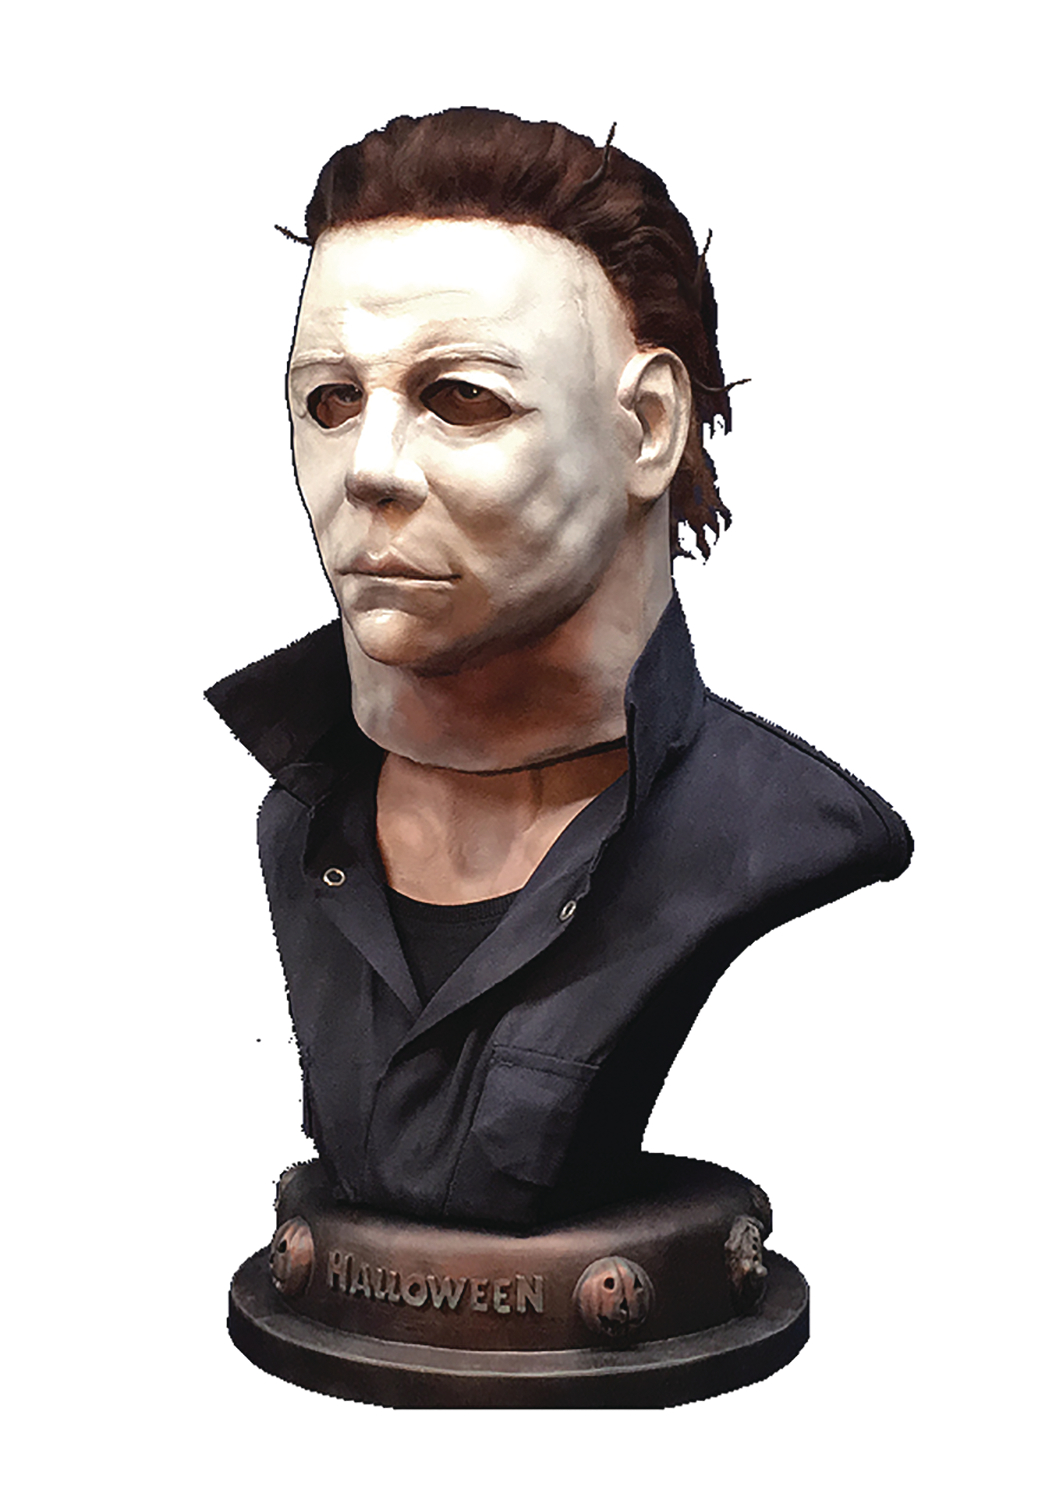 HALLOWEEN MICHAEL MYERS LIFE-SIZE BUST